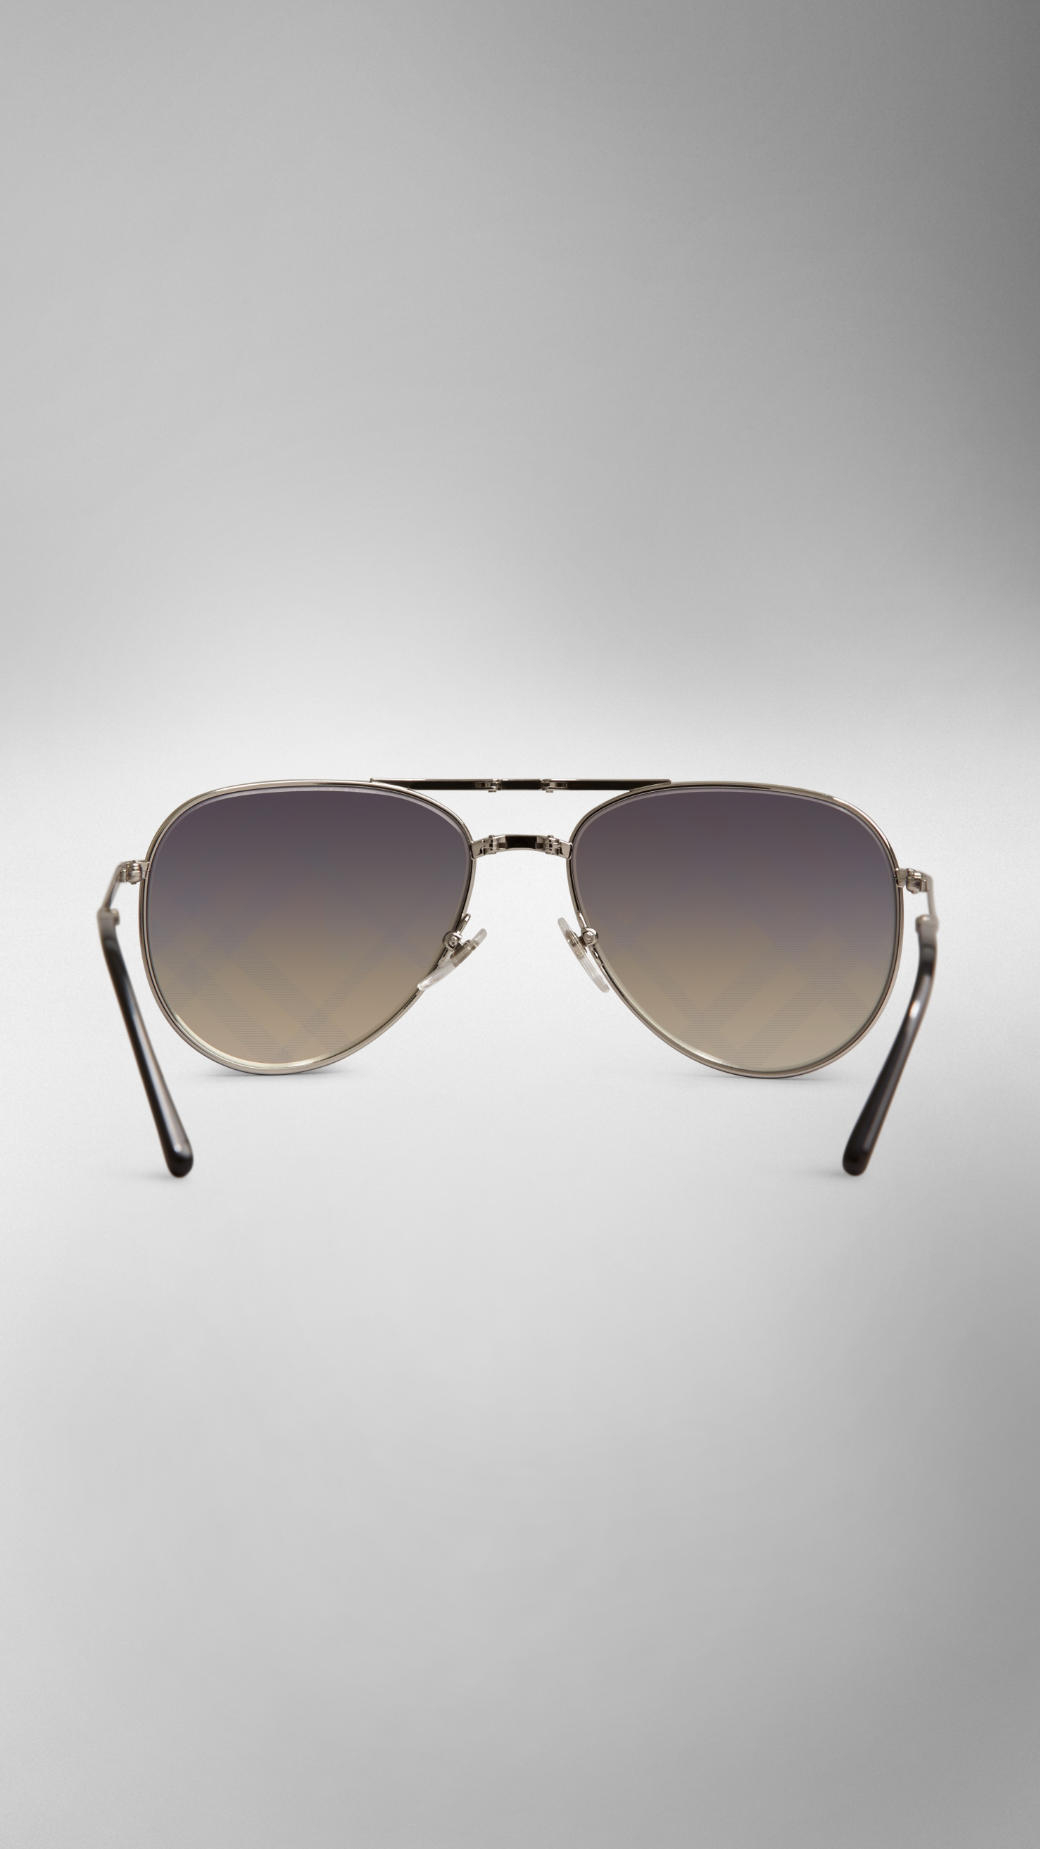 3ef4bf7b3dc Lyst - Burberry Foldable Aviator Sunglasses with Check Lenses in ...